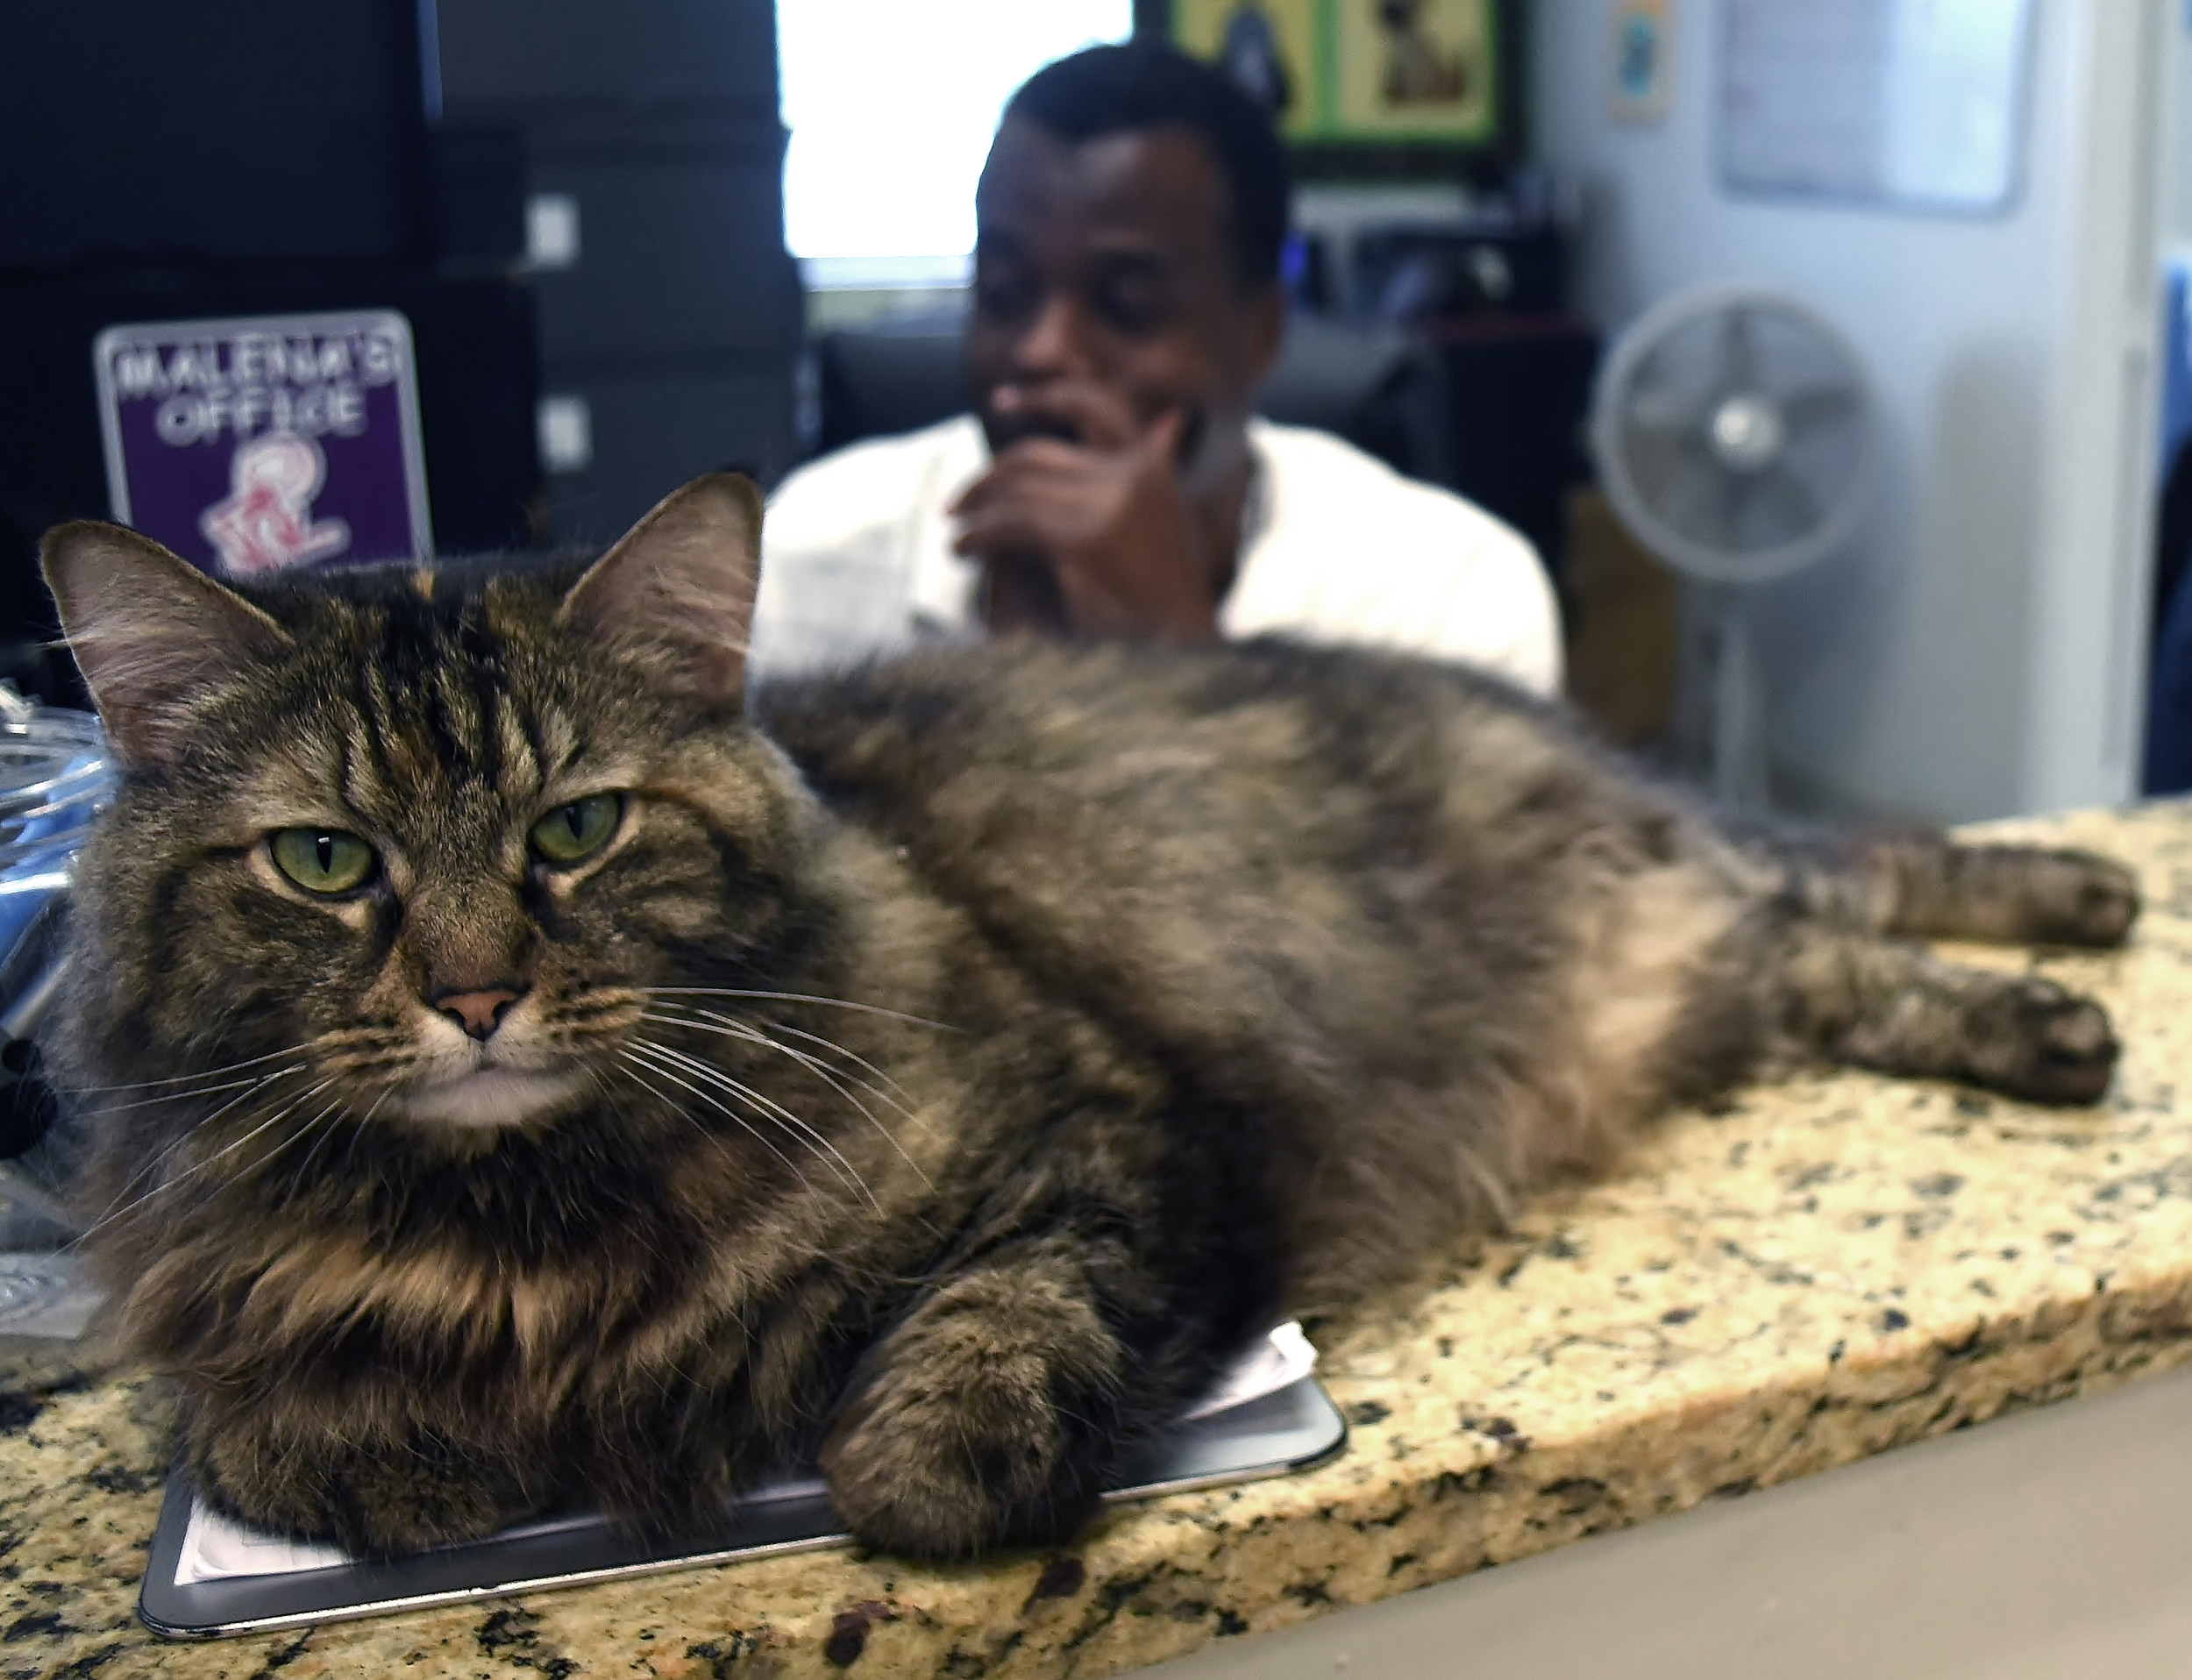 Tori, a Maine Coon cat who lives at the Etowah Valley Humane Society shelter on Ladds Mountain Road, relaxes on the office counter at the shelter as EVHS Director Bryan Canty reviews adoption records on the facility's computer.